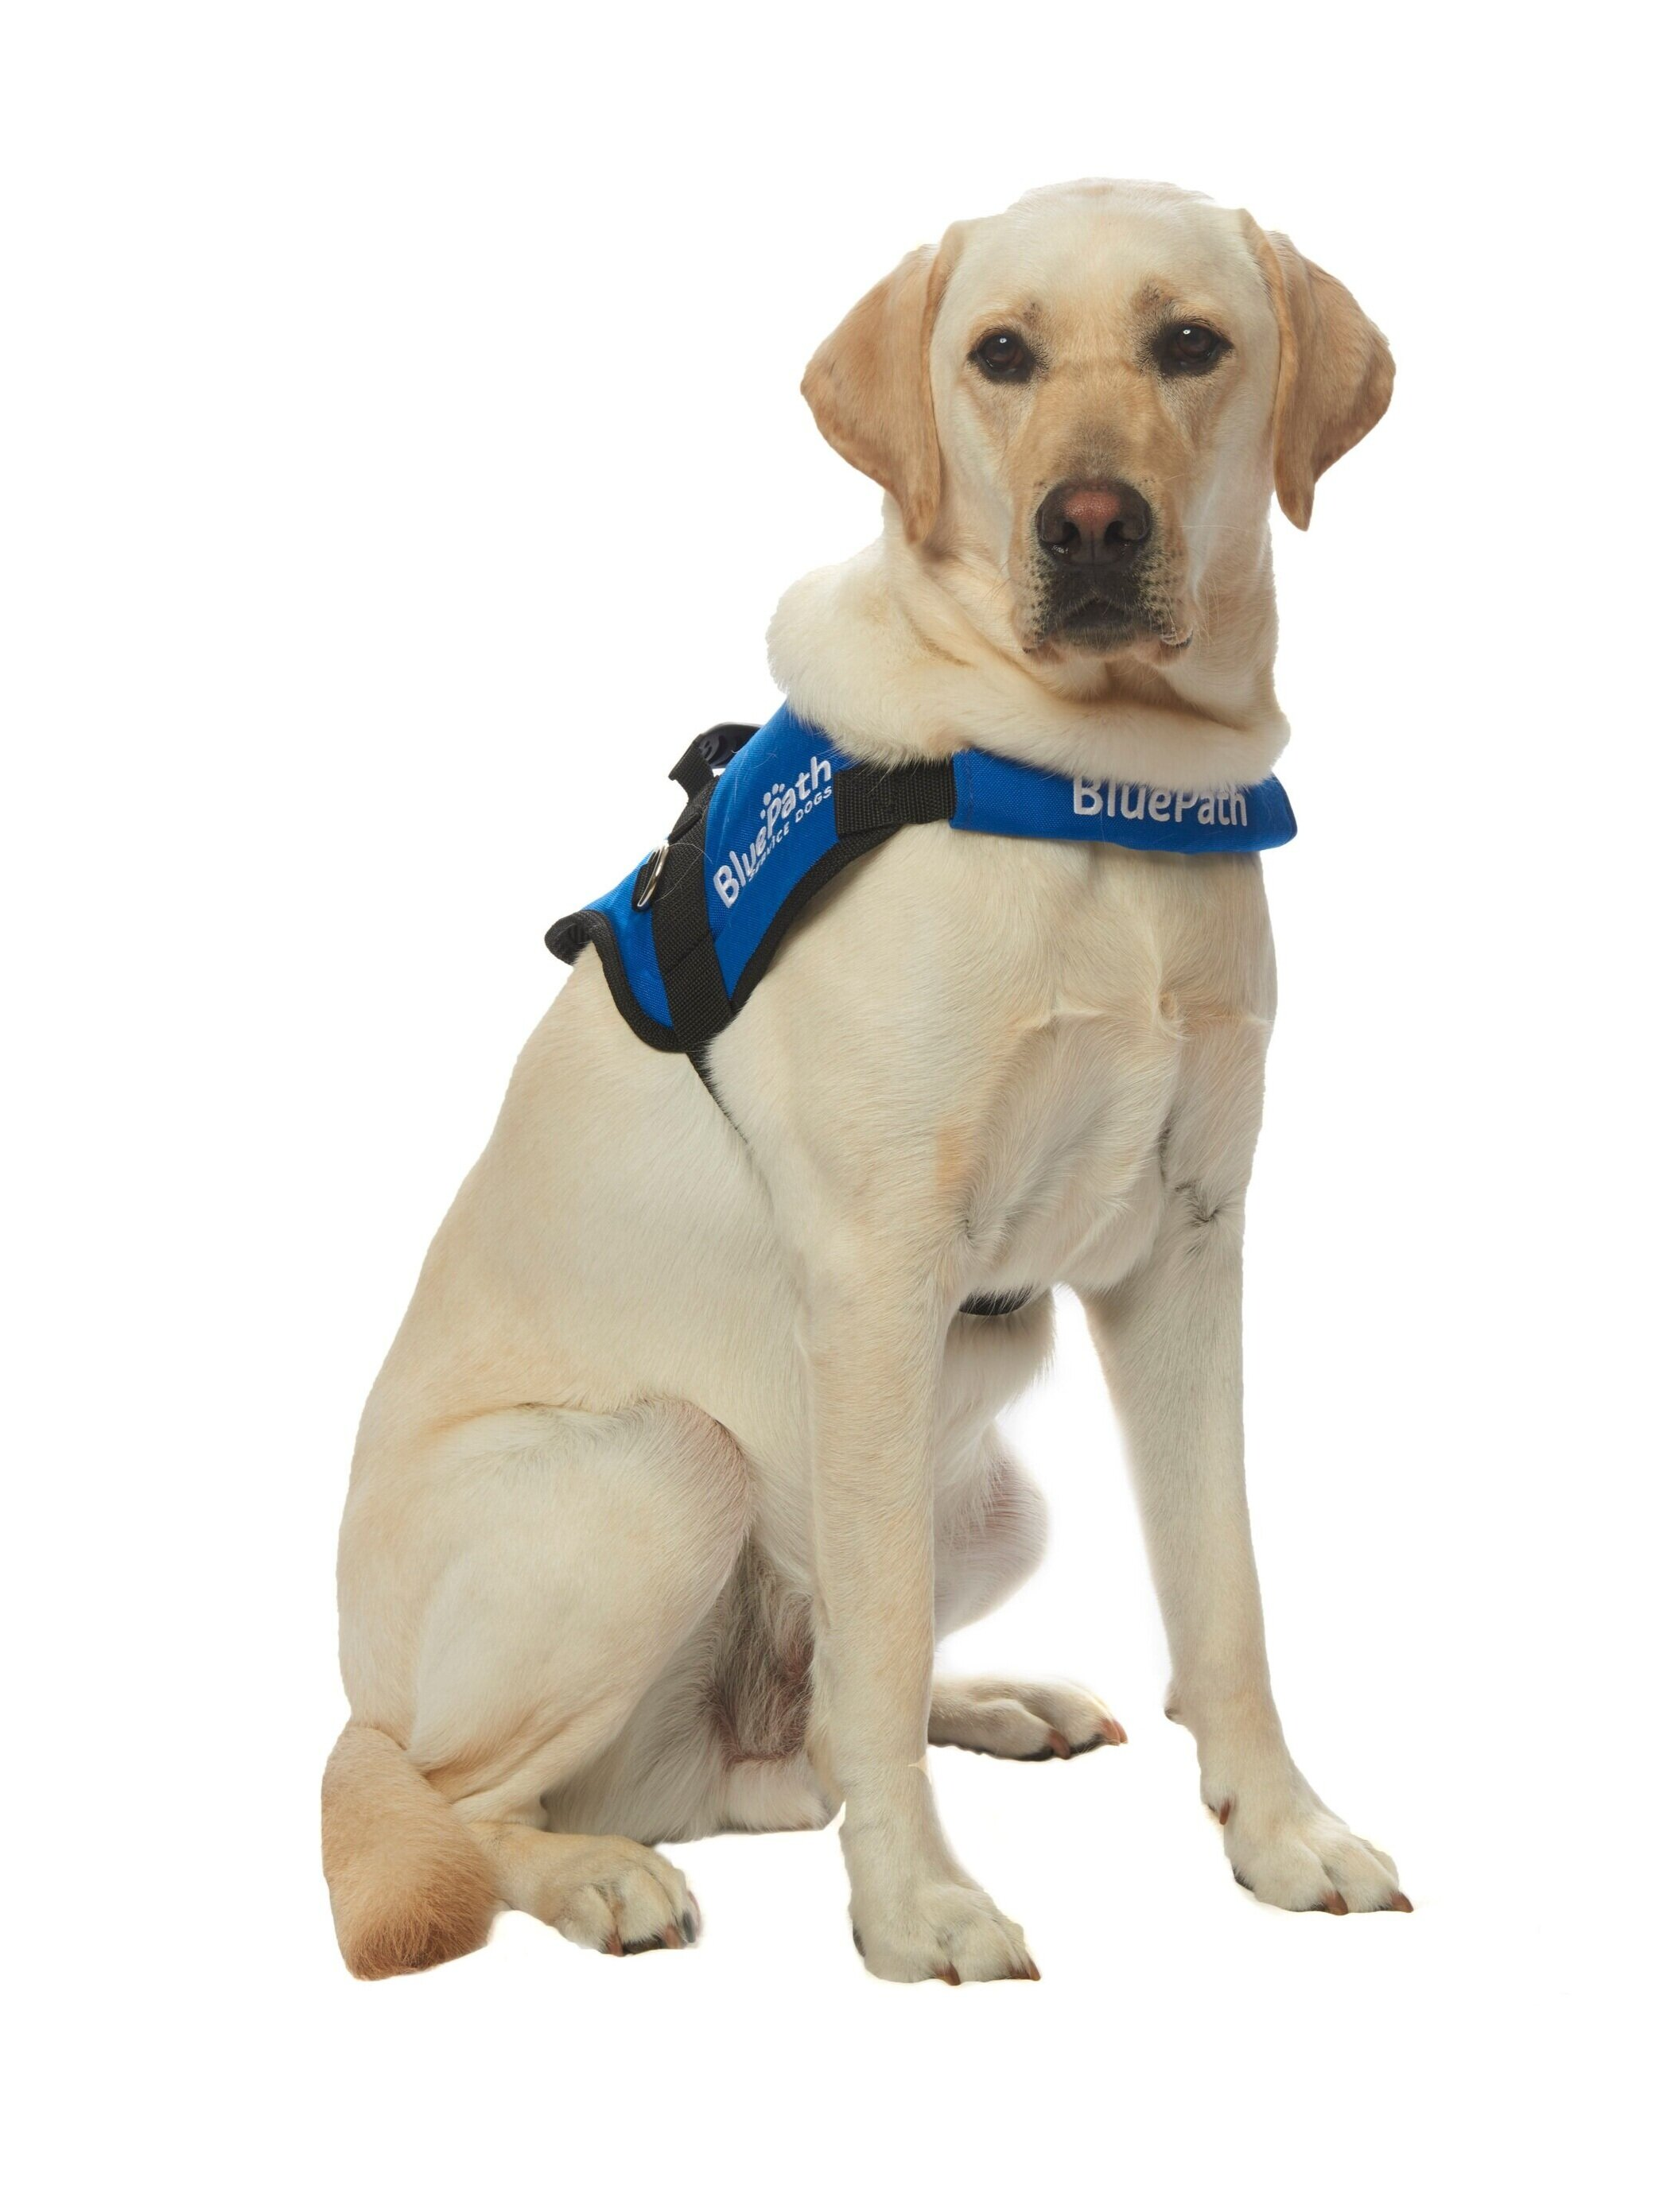 BluePath Clancy   Graduated with the Millman Family  Raised by Garrett Niedlinger, Lauren Cook and Luke Anderson  Fostered by the Sato family  Provided by Guide Dog Foundation